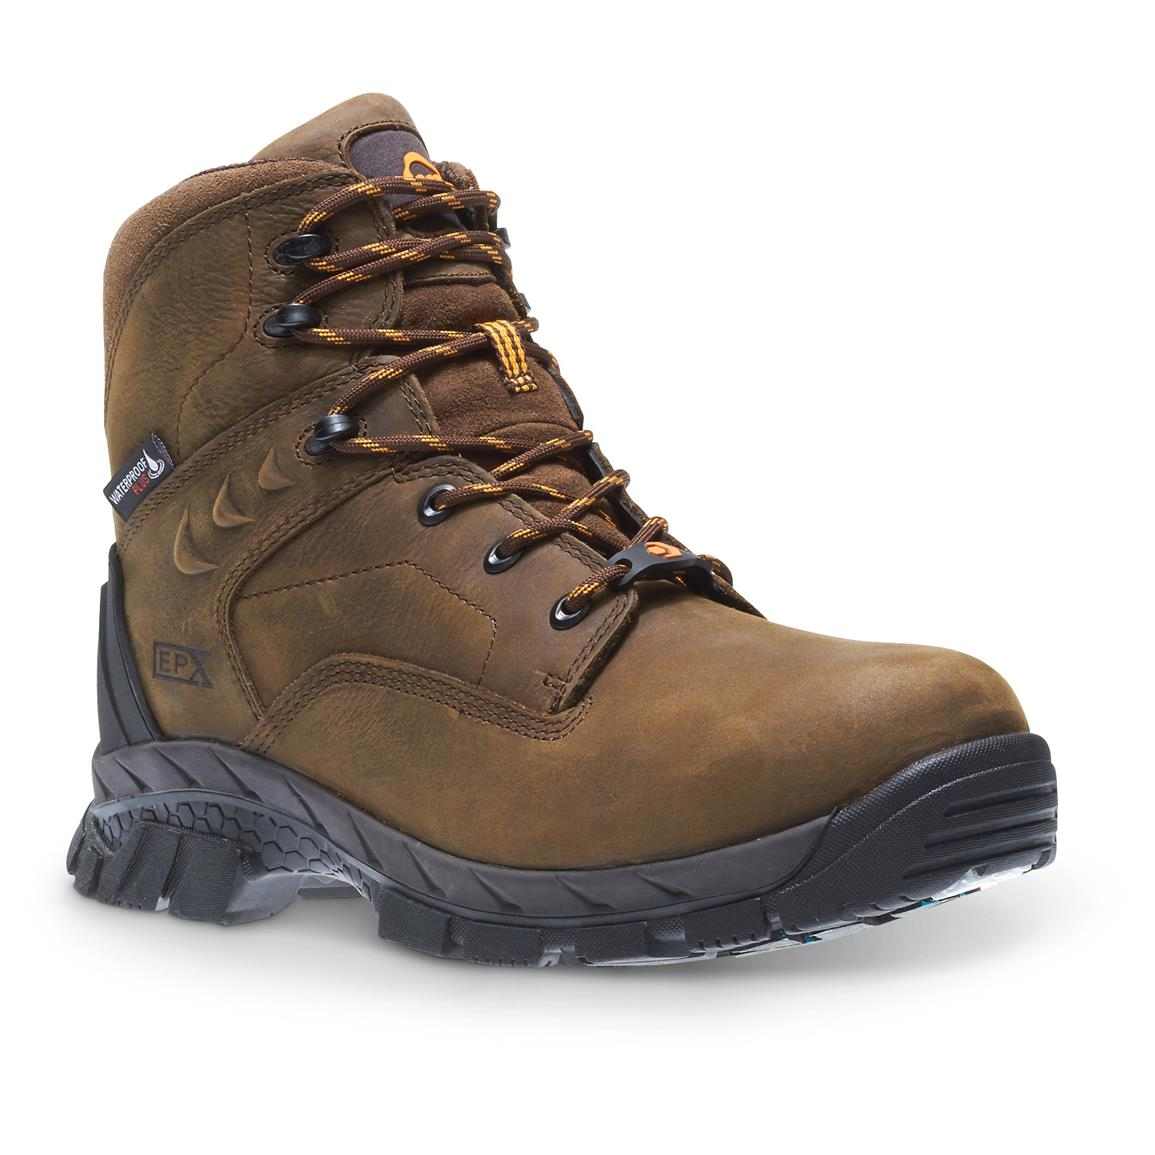 "Wolverine Men's Glacier Ice Waterproof 6"" Insulated Composite Toe Work Boots, 400 gram, Brown"